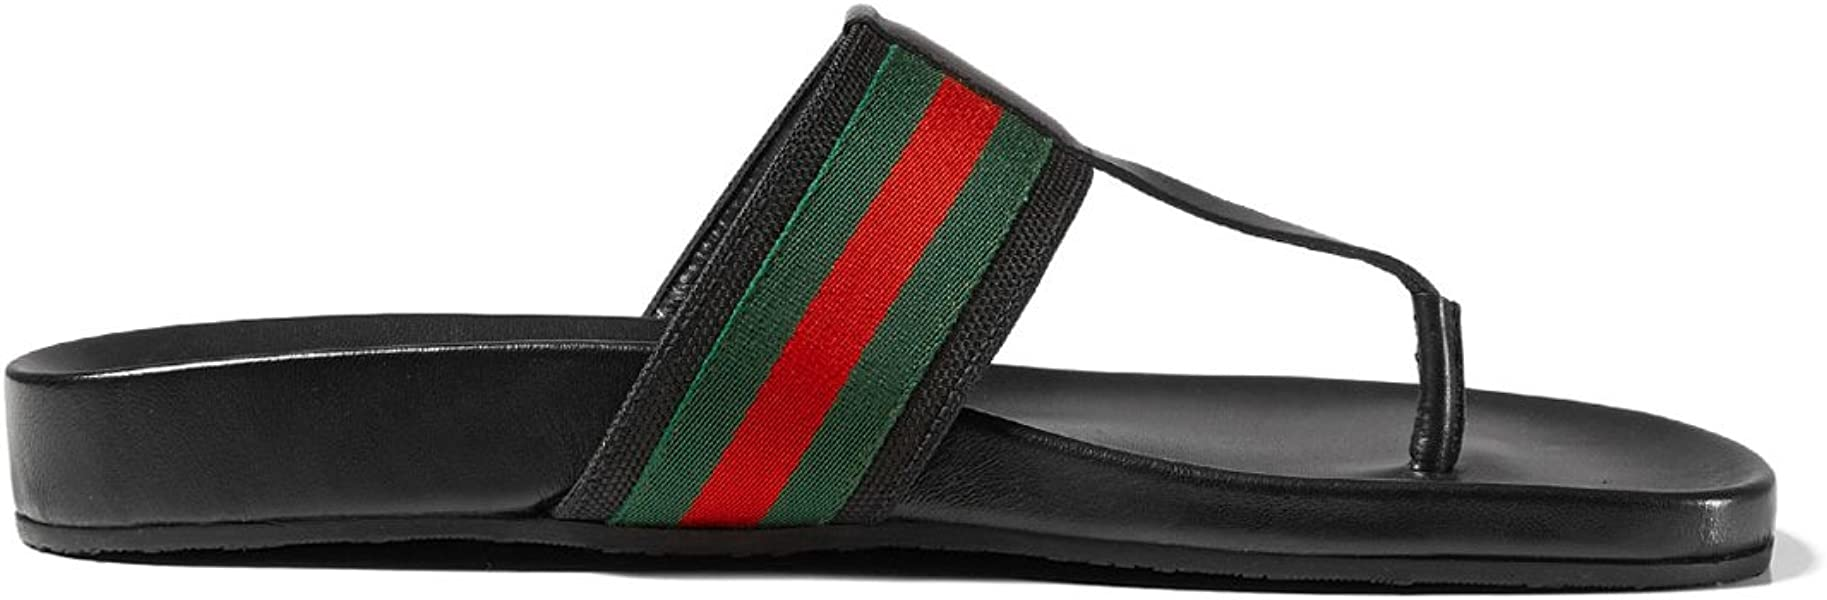 9c343b6198d Amazon.com  Gucci Men s Web Strap Sandal